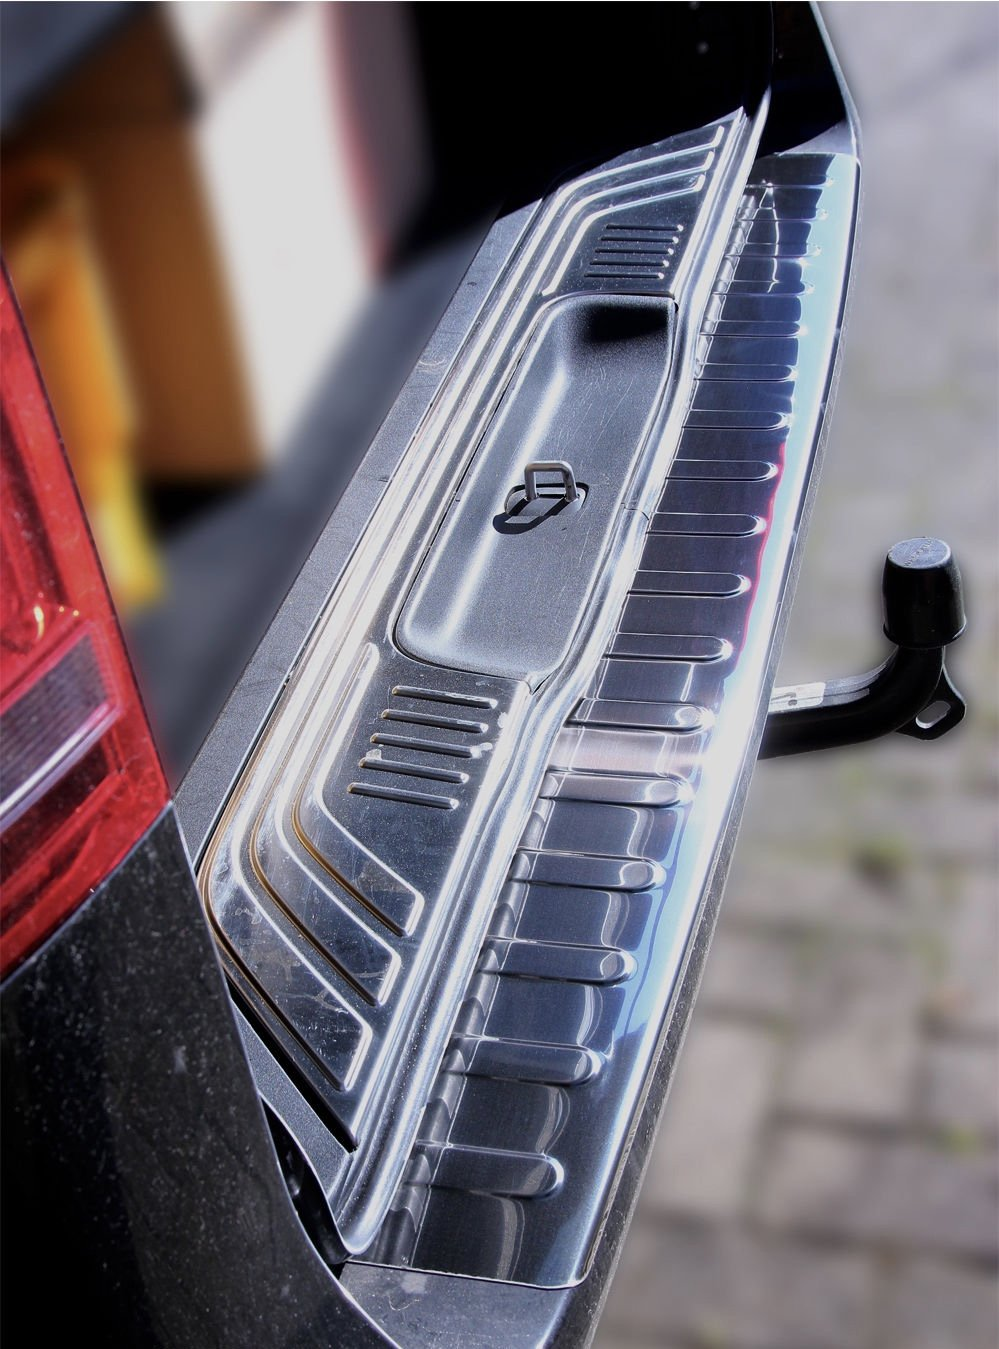 Mercedes Benz Vito W447 V Class Bumper Protector Stainless Steel Rear Step Cover Mobilio High Gloss Chrome Car Motorbike